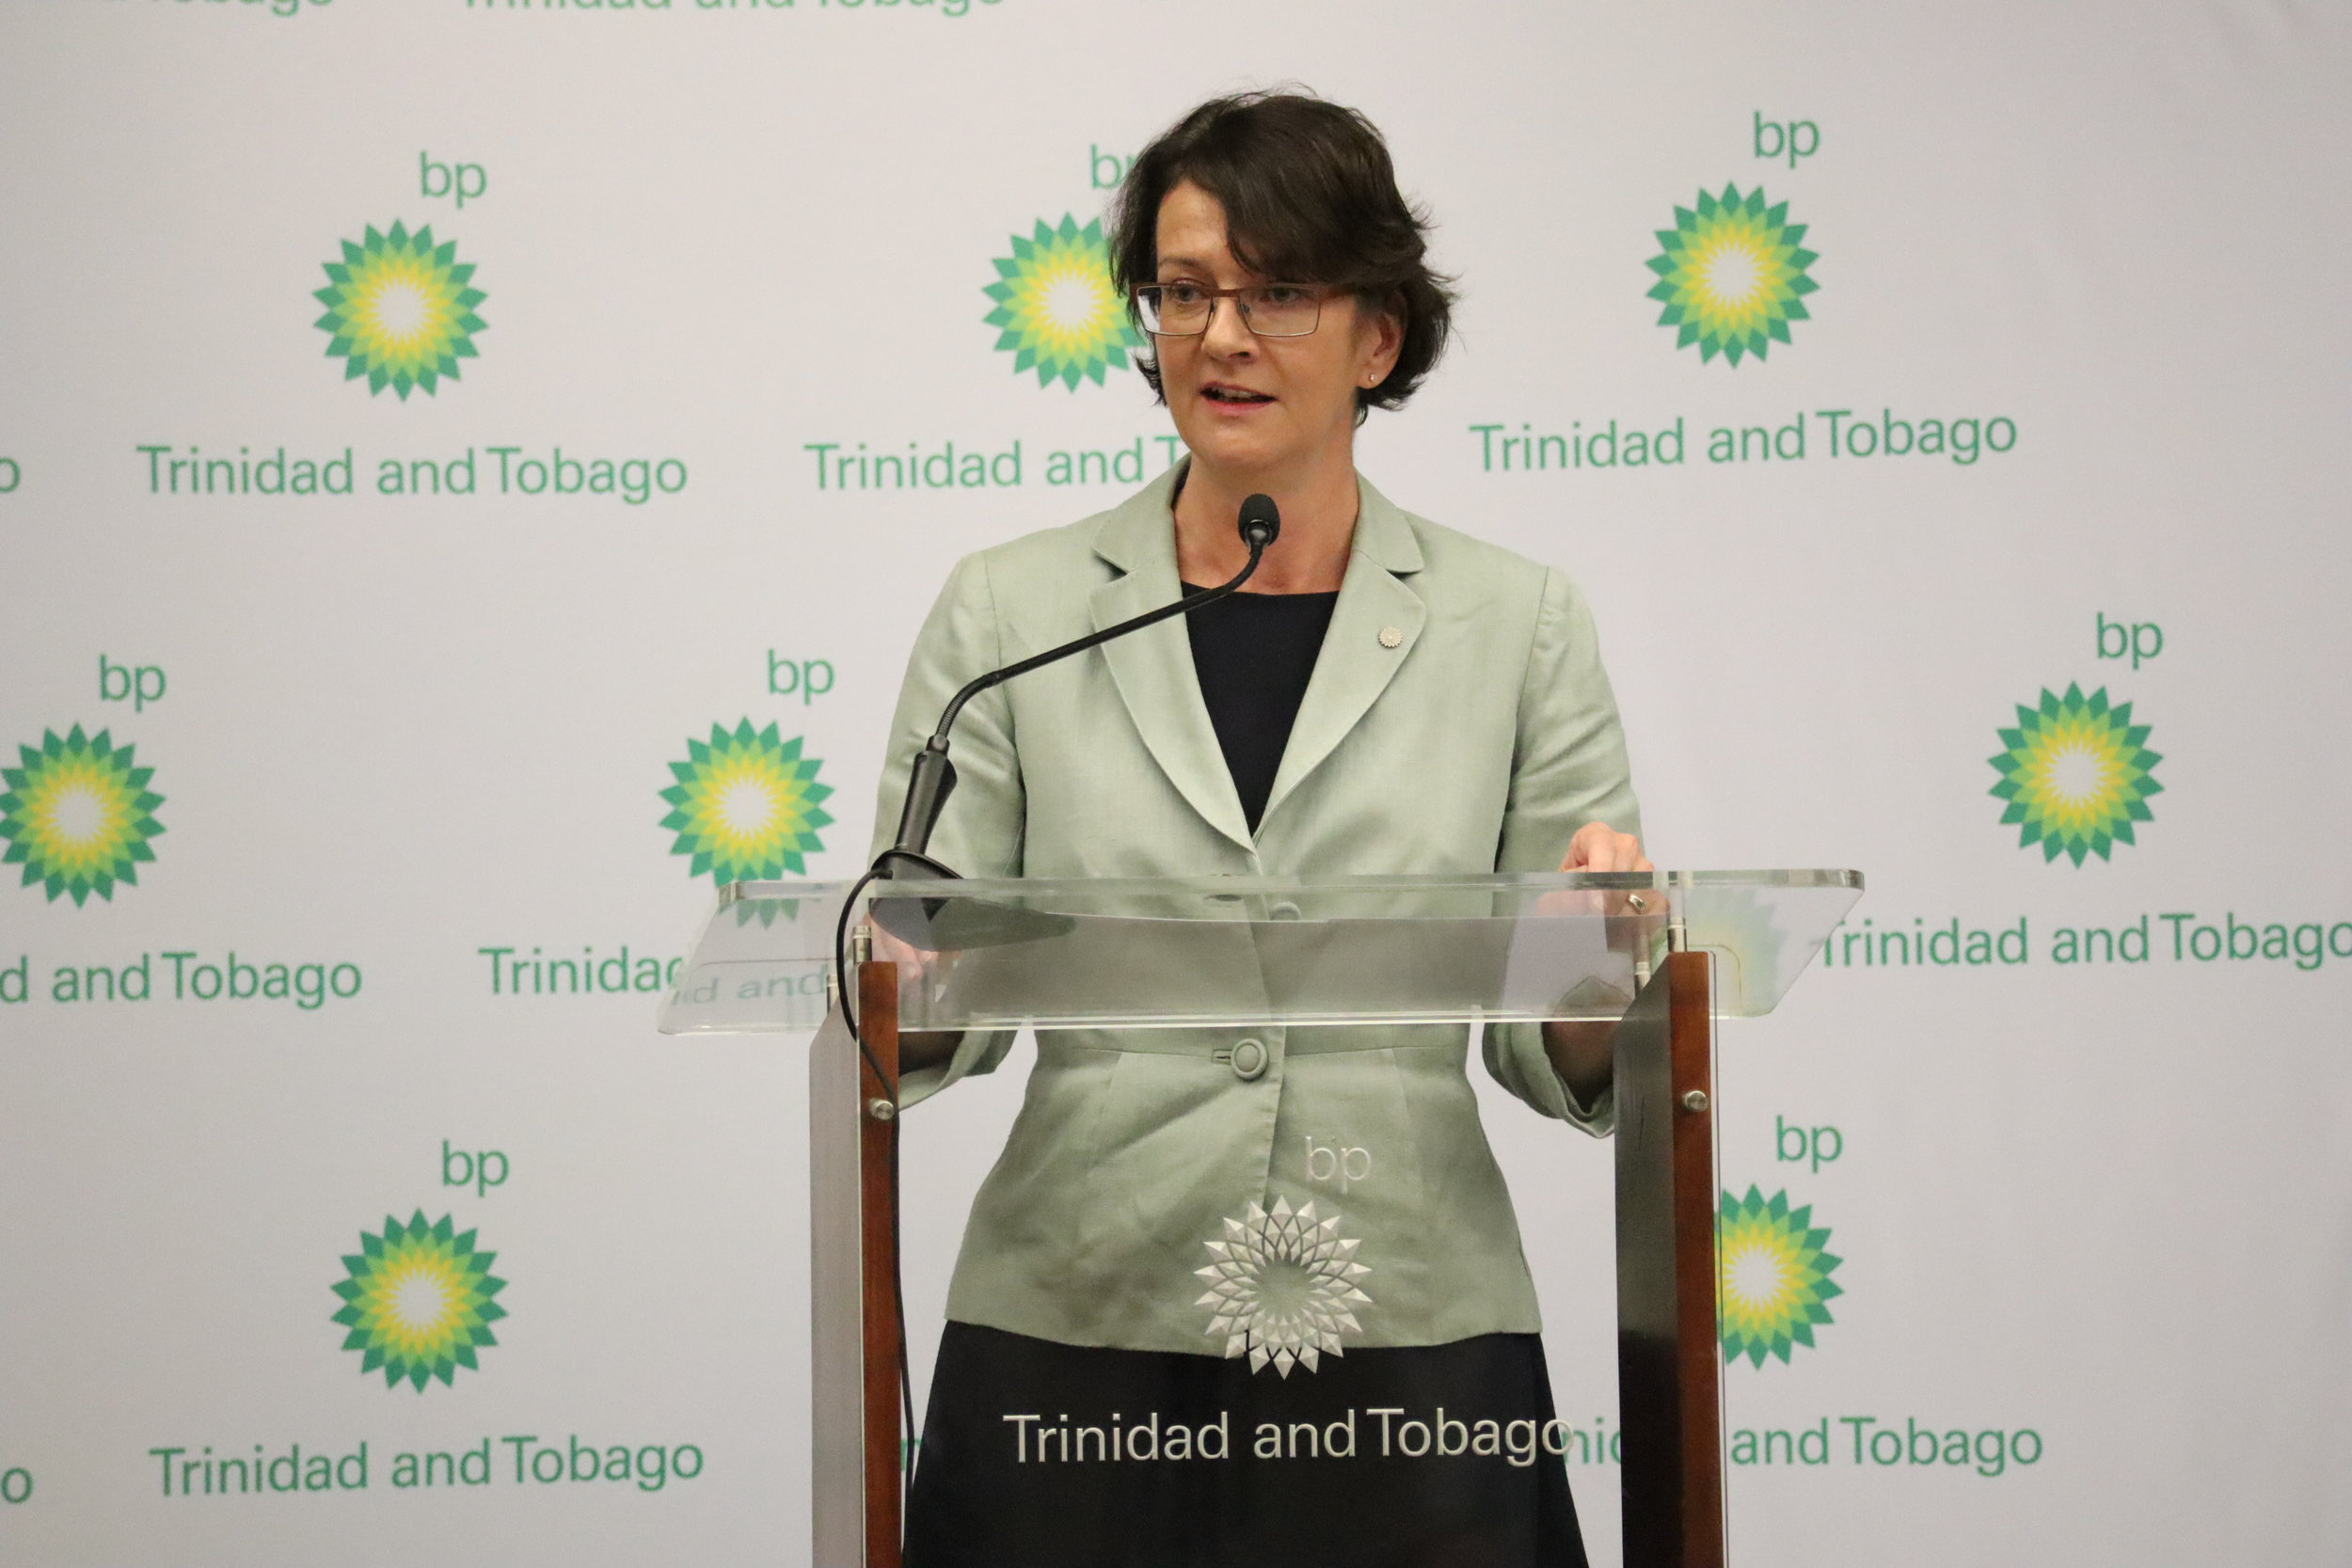 Bp And Shell In Joint Bid For Renewable Energy Project In Trinidad And Tobago Energy Chamber Of Trinidad And Tobago